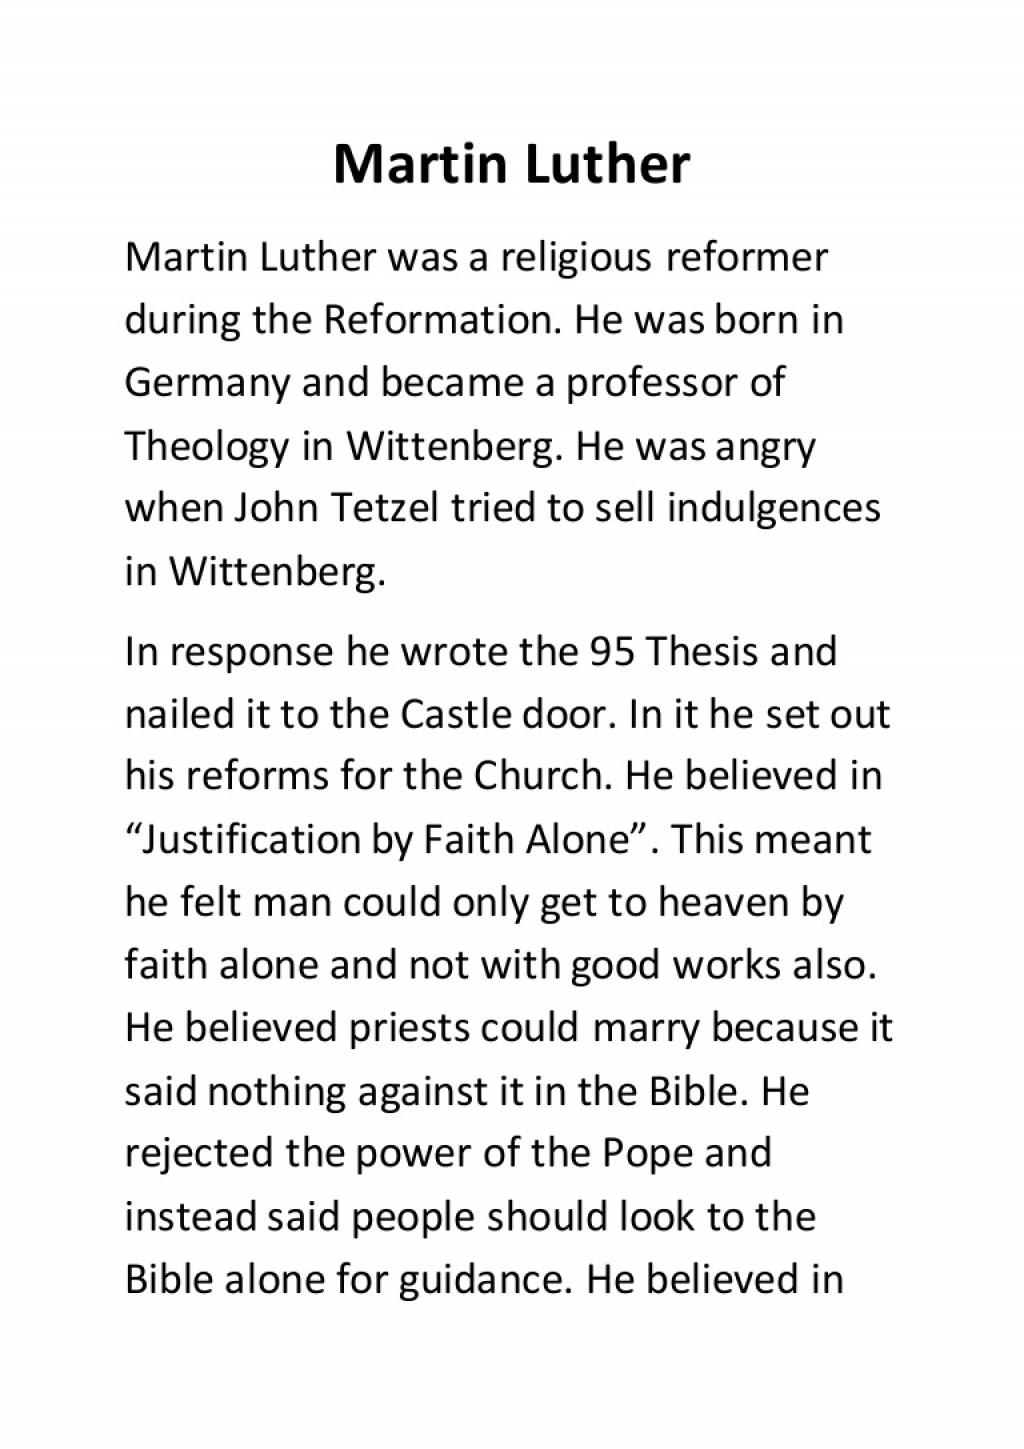 001 Essay Example Martinluther Conversion Gate02 Thumbnail Martin Luther Magnificent Reformation Large